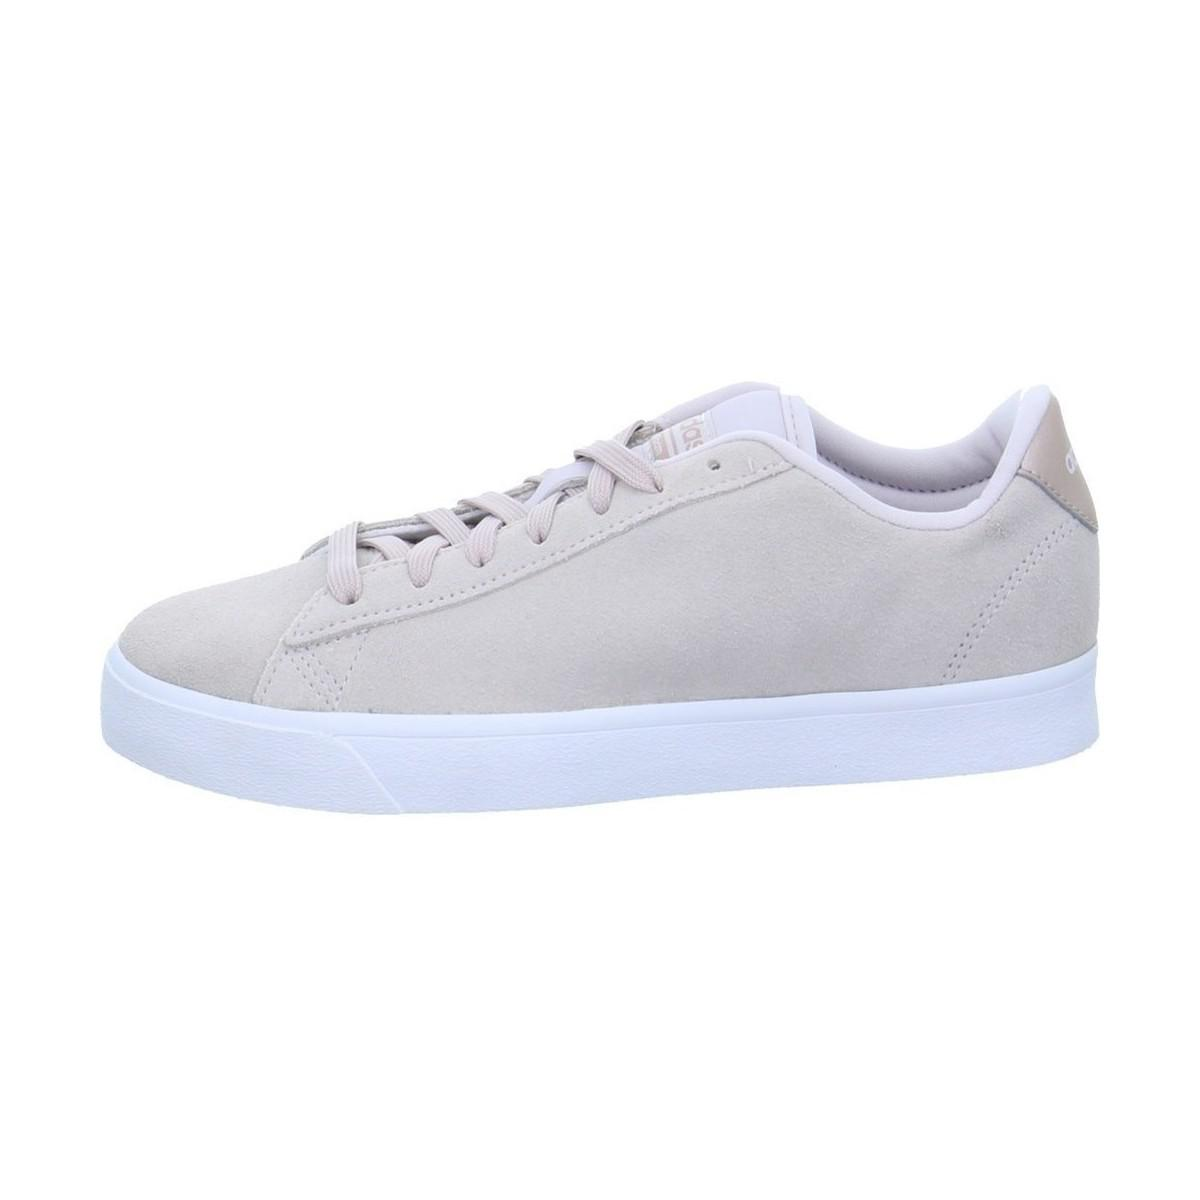 Qt Shoes W Adidas trainers In For Grey Daily Gray Cl Cf Men's YTwYaIEq